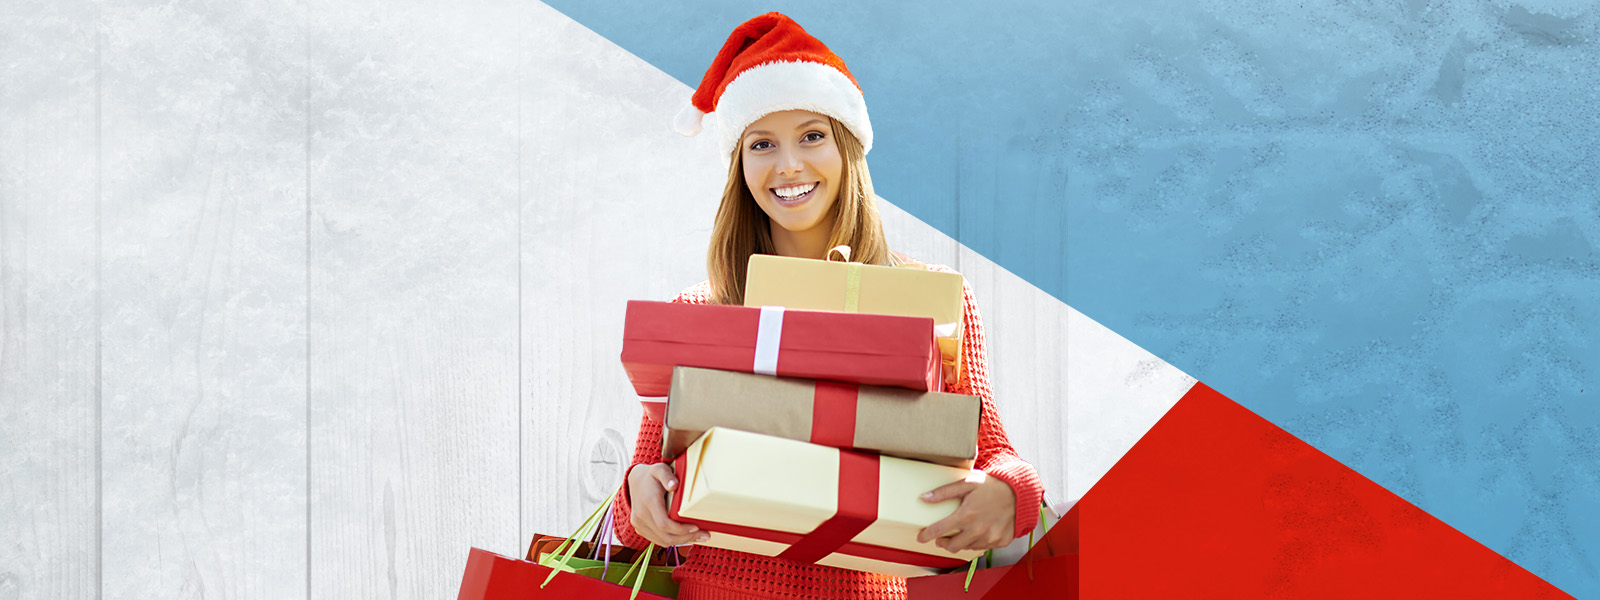 Woman holding gifts wearing a red Santa Hat